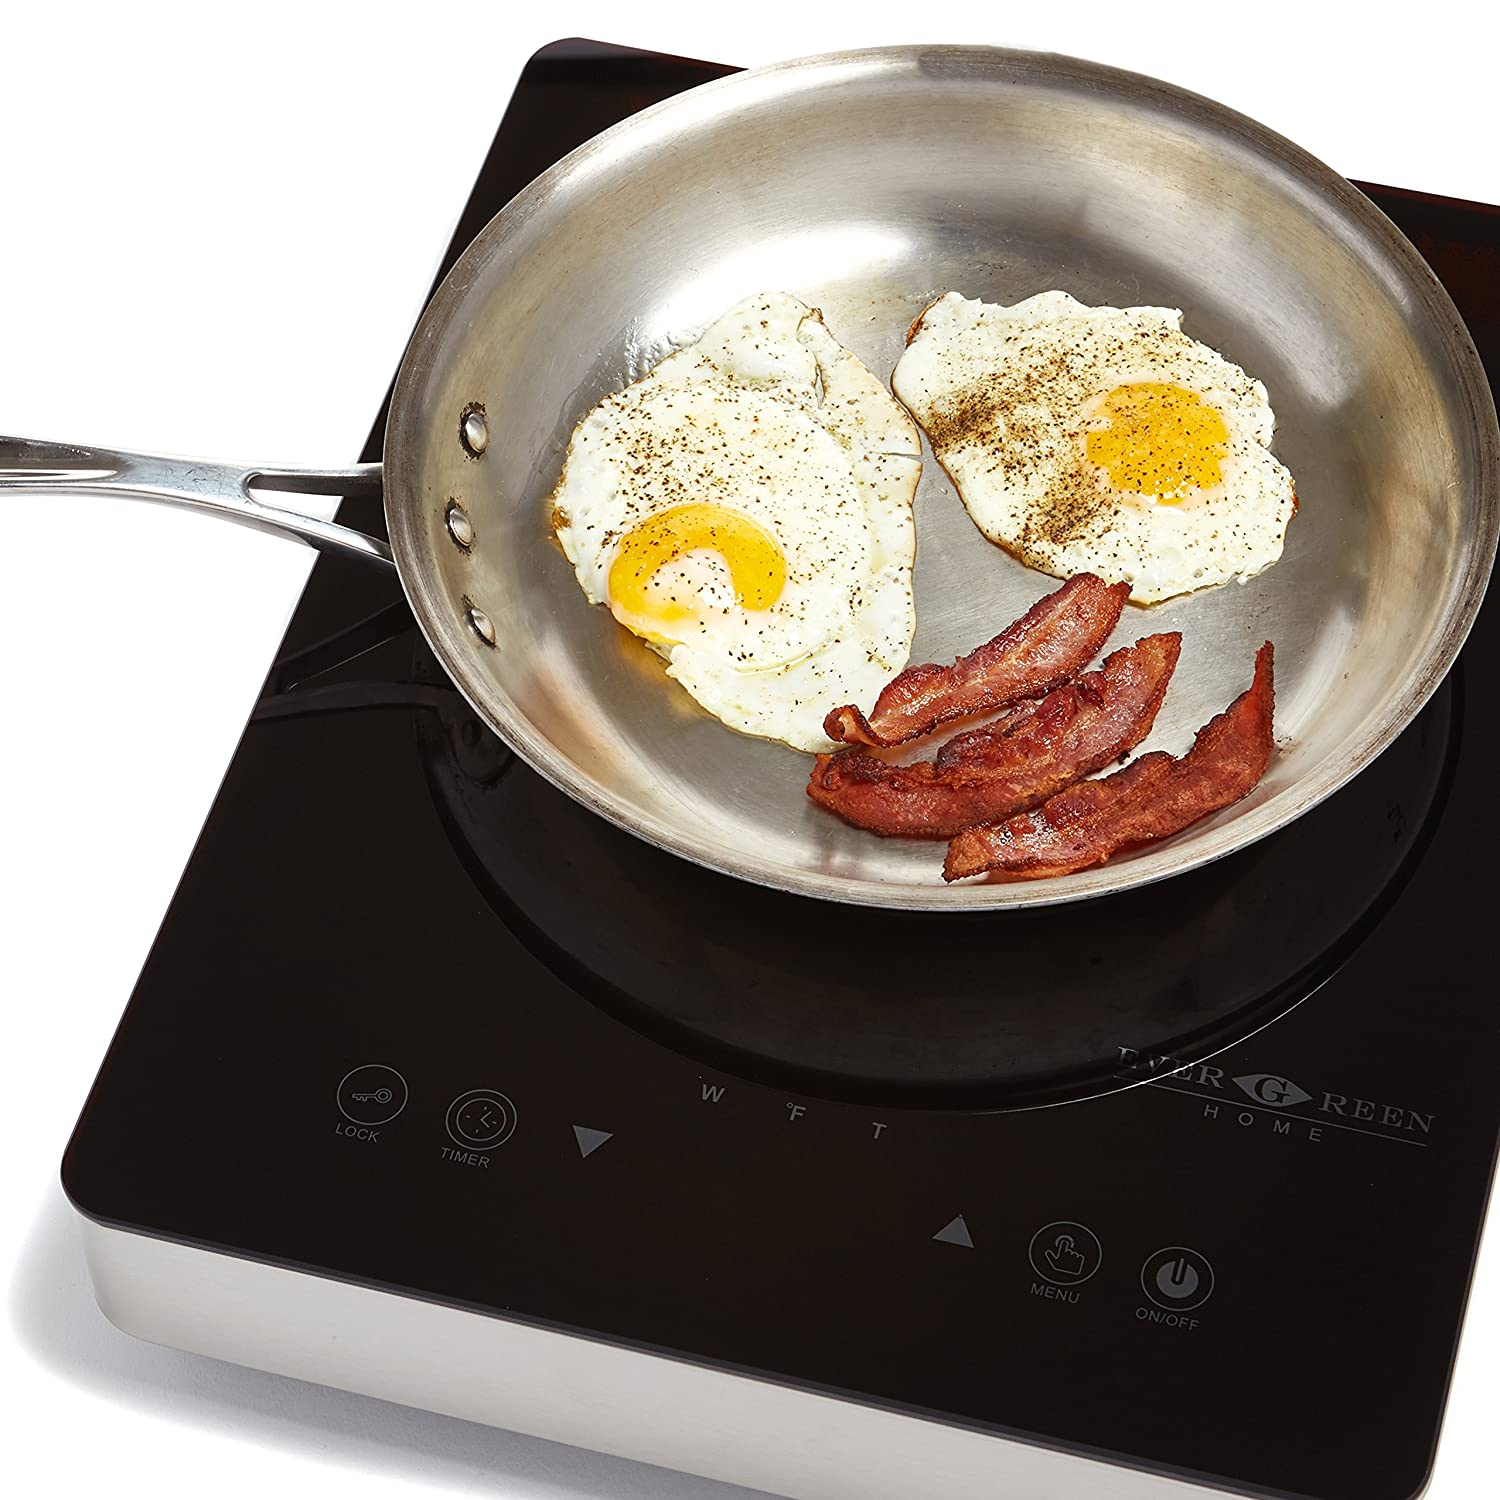 Evergreen Home 1800W Digital Induction Cooktop | Portable Countertop Burner-Easy To Clean (silver)